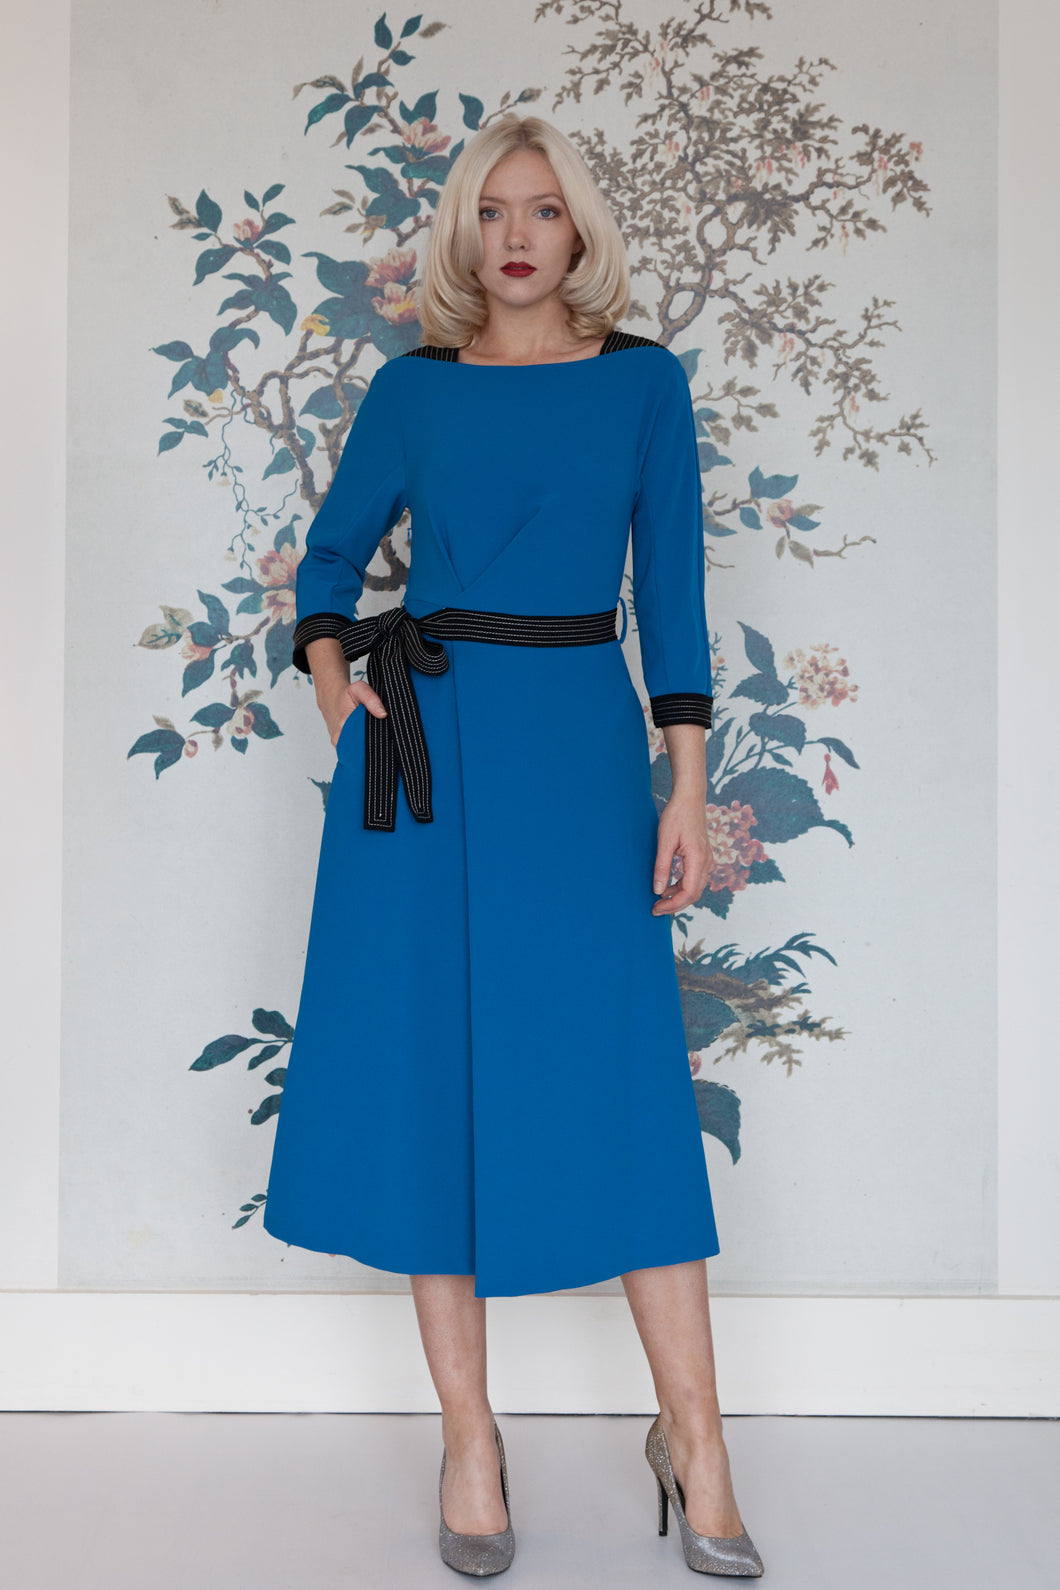 Beatrice B Blue Midi Dress with Black Ribbon Dropping